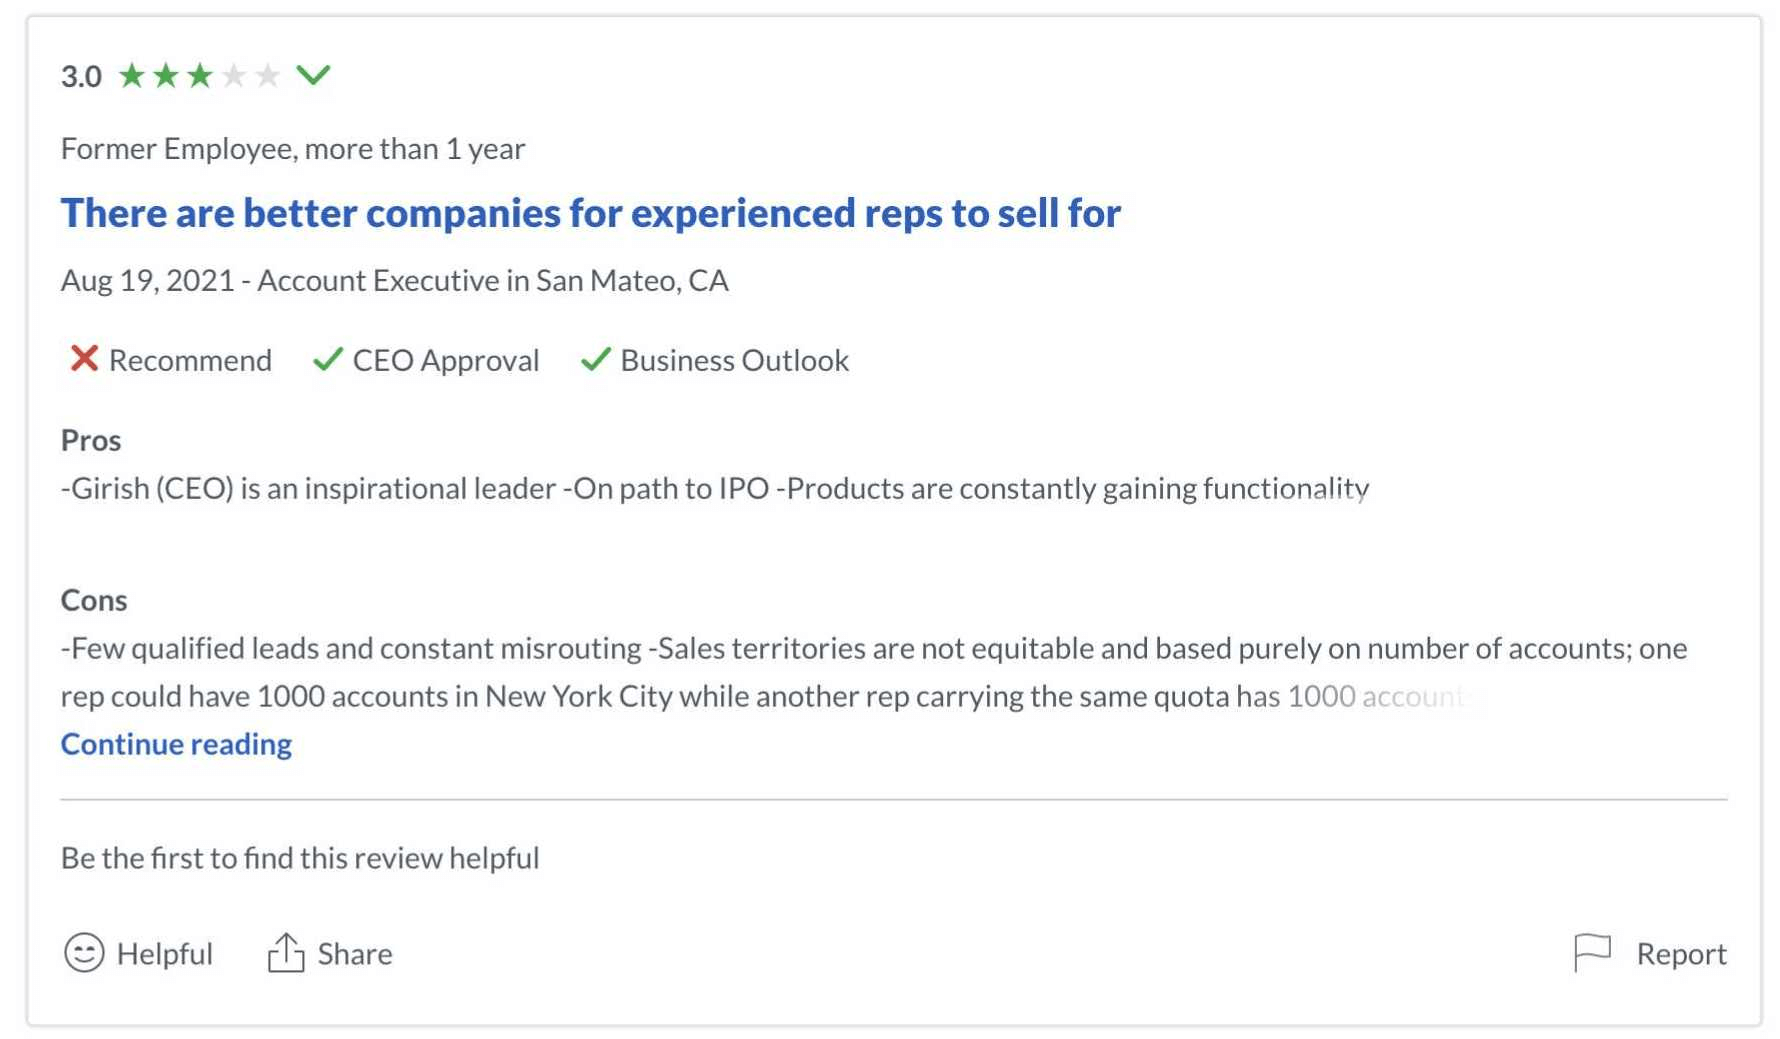 Glassdoor is also an example for a social media channel: Example of a bad (3/5) review by a former employee